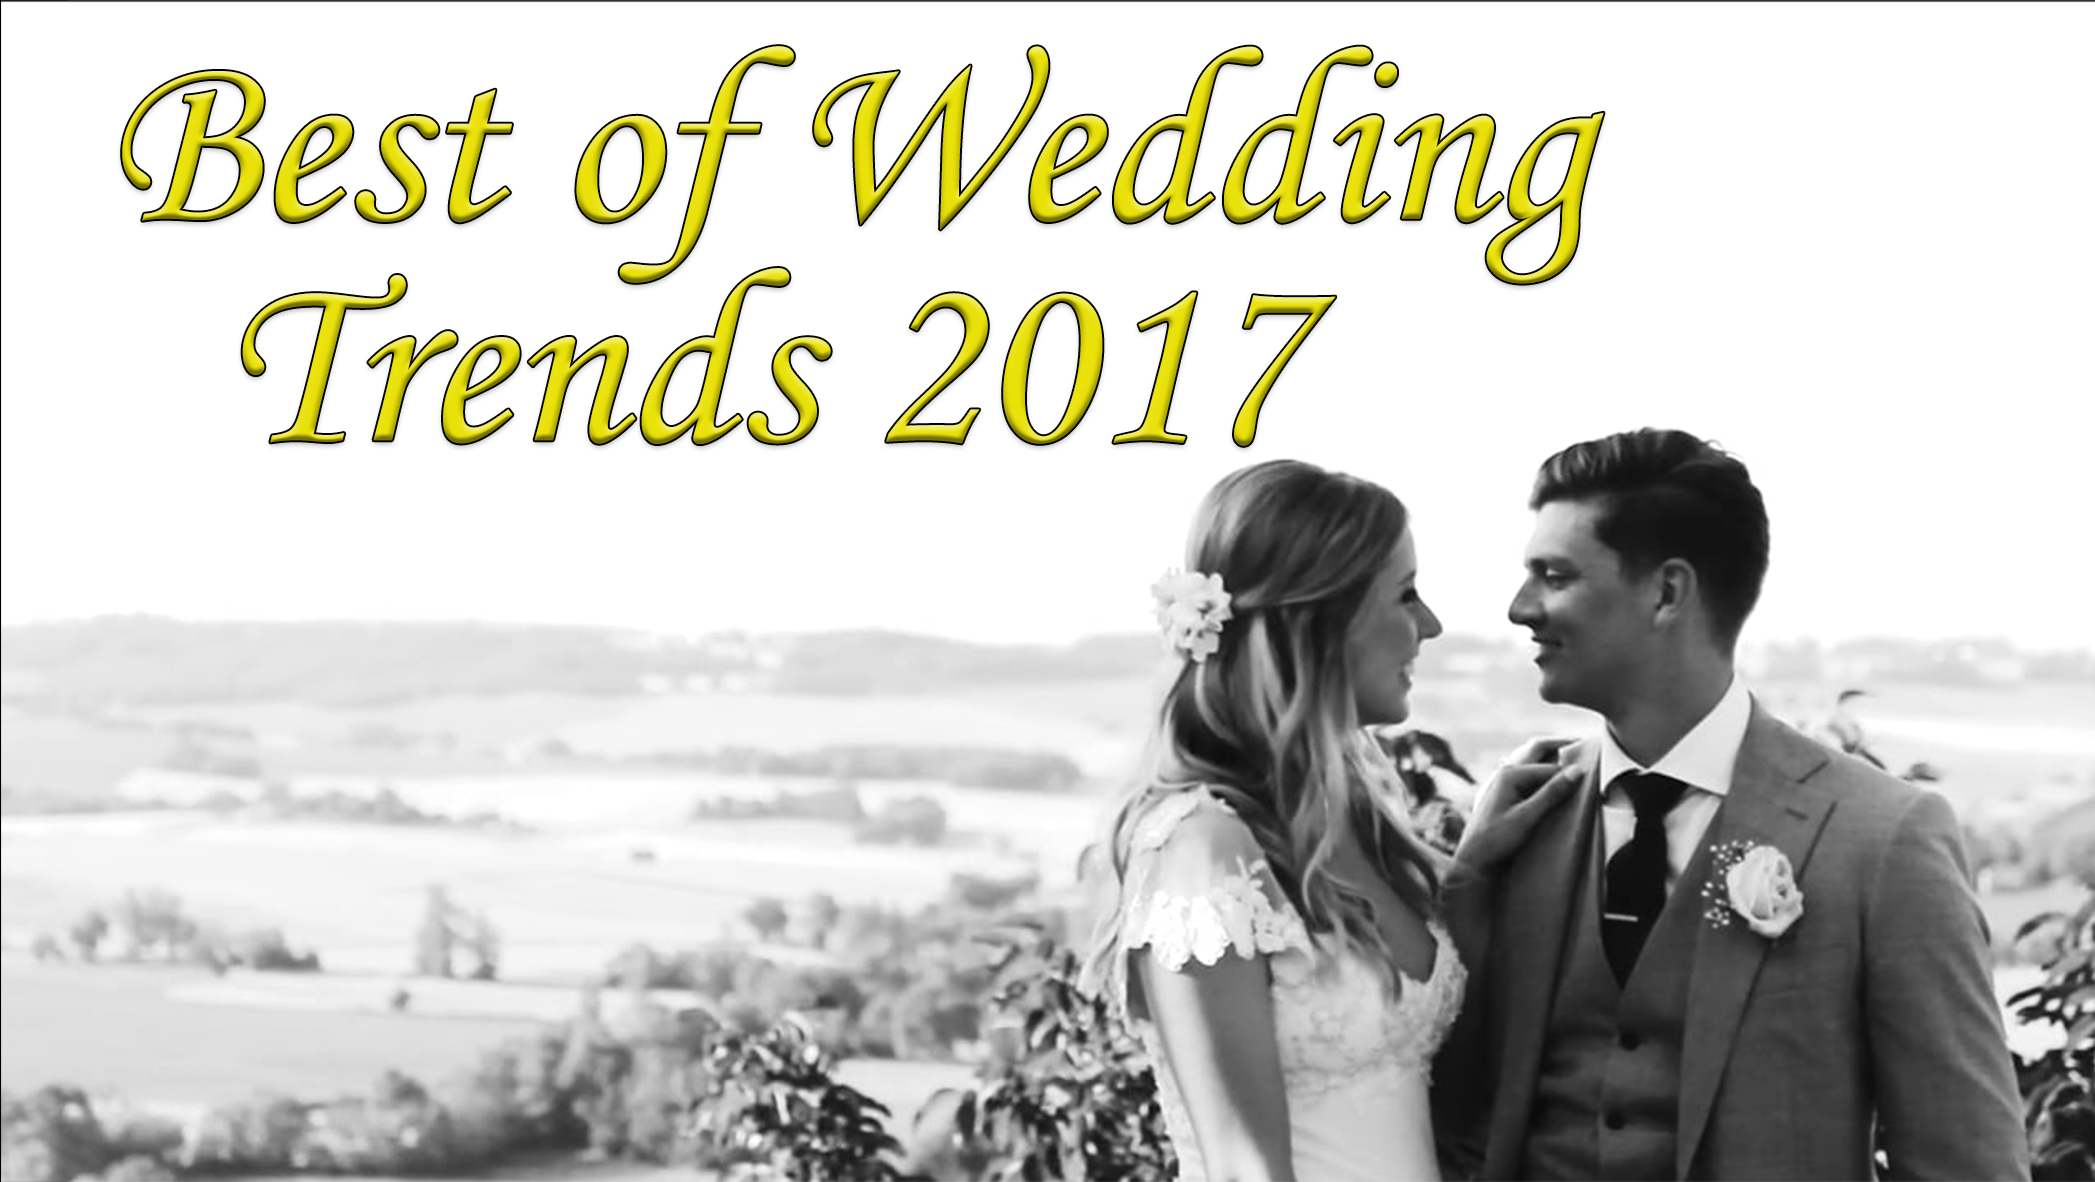 Best of Wedding Trends 2017